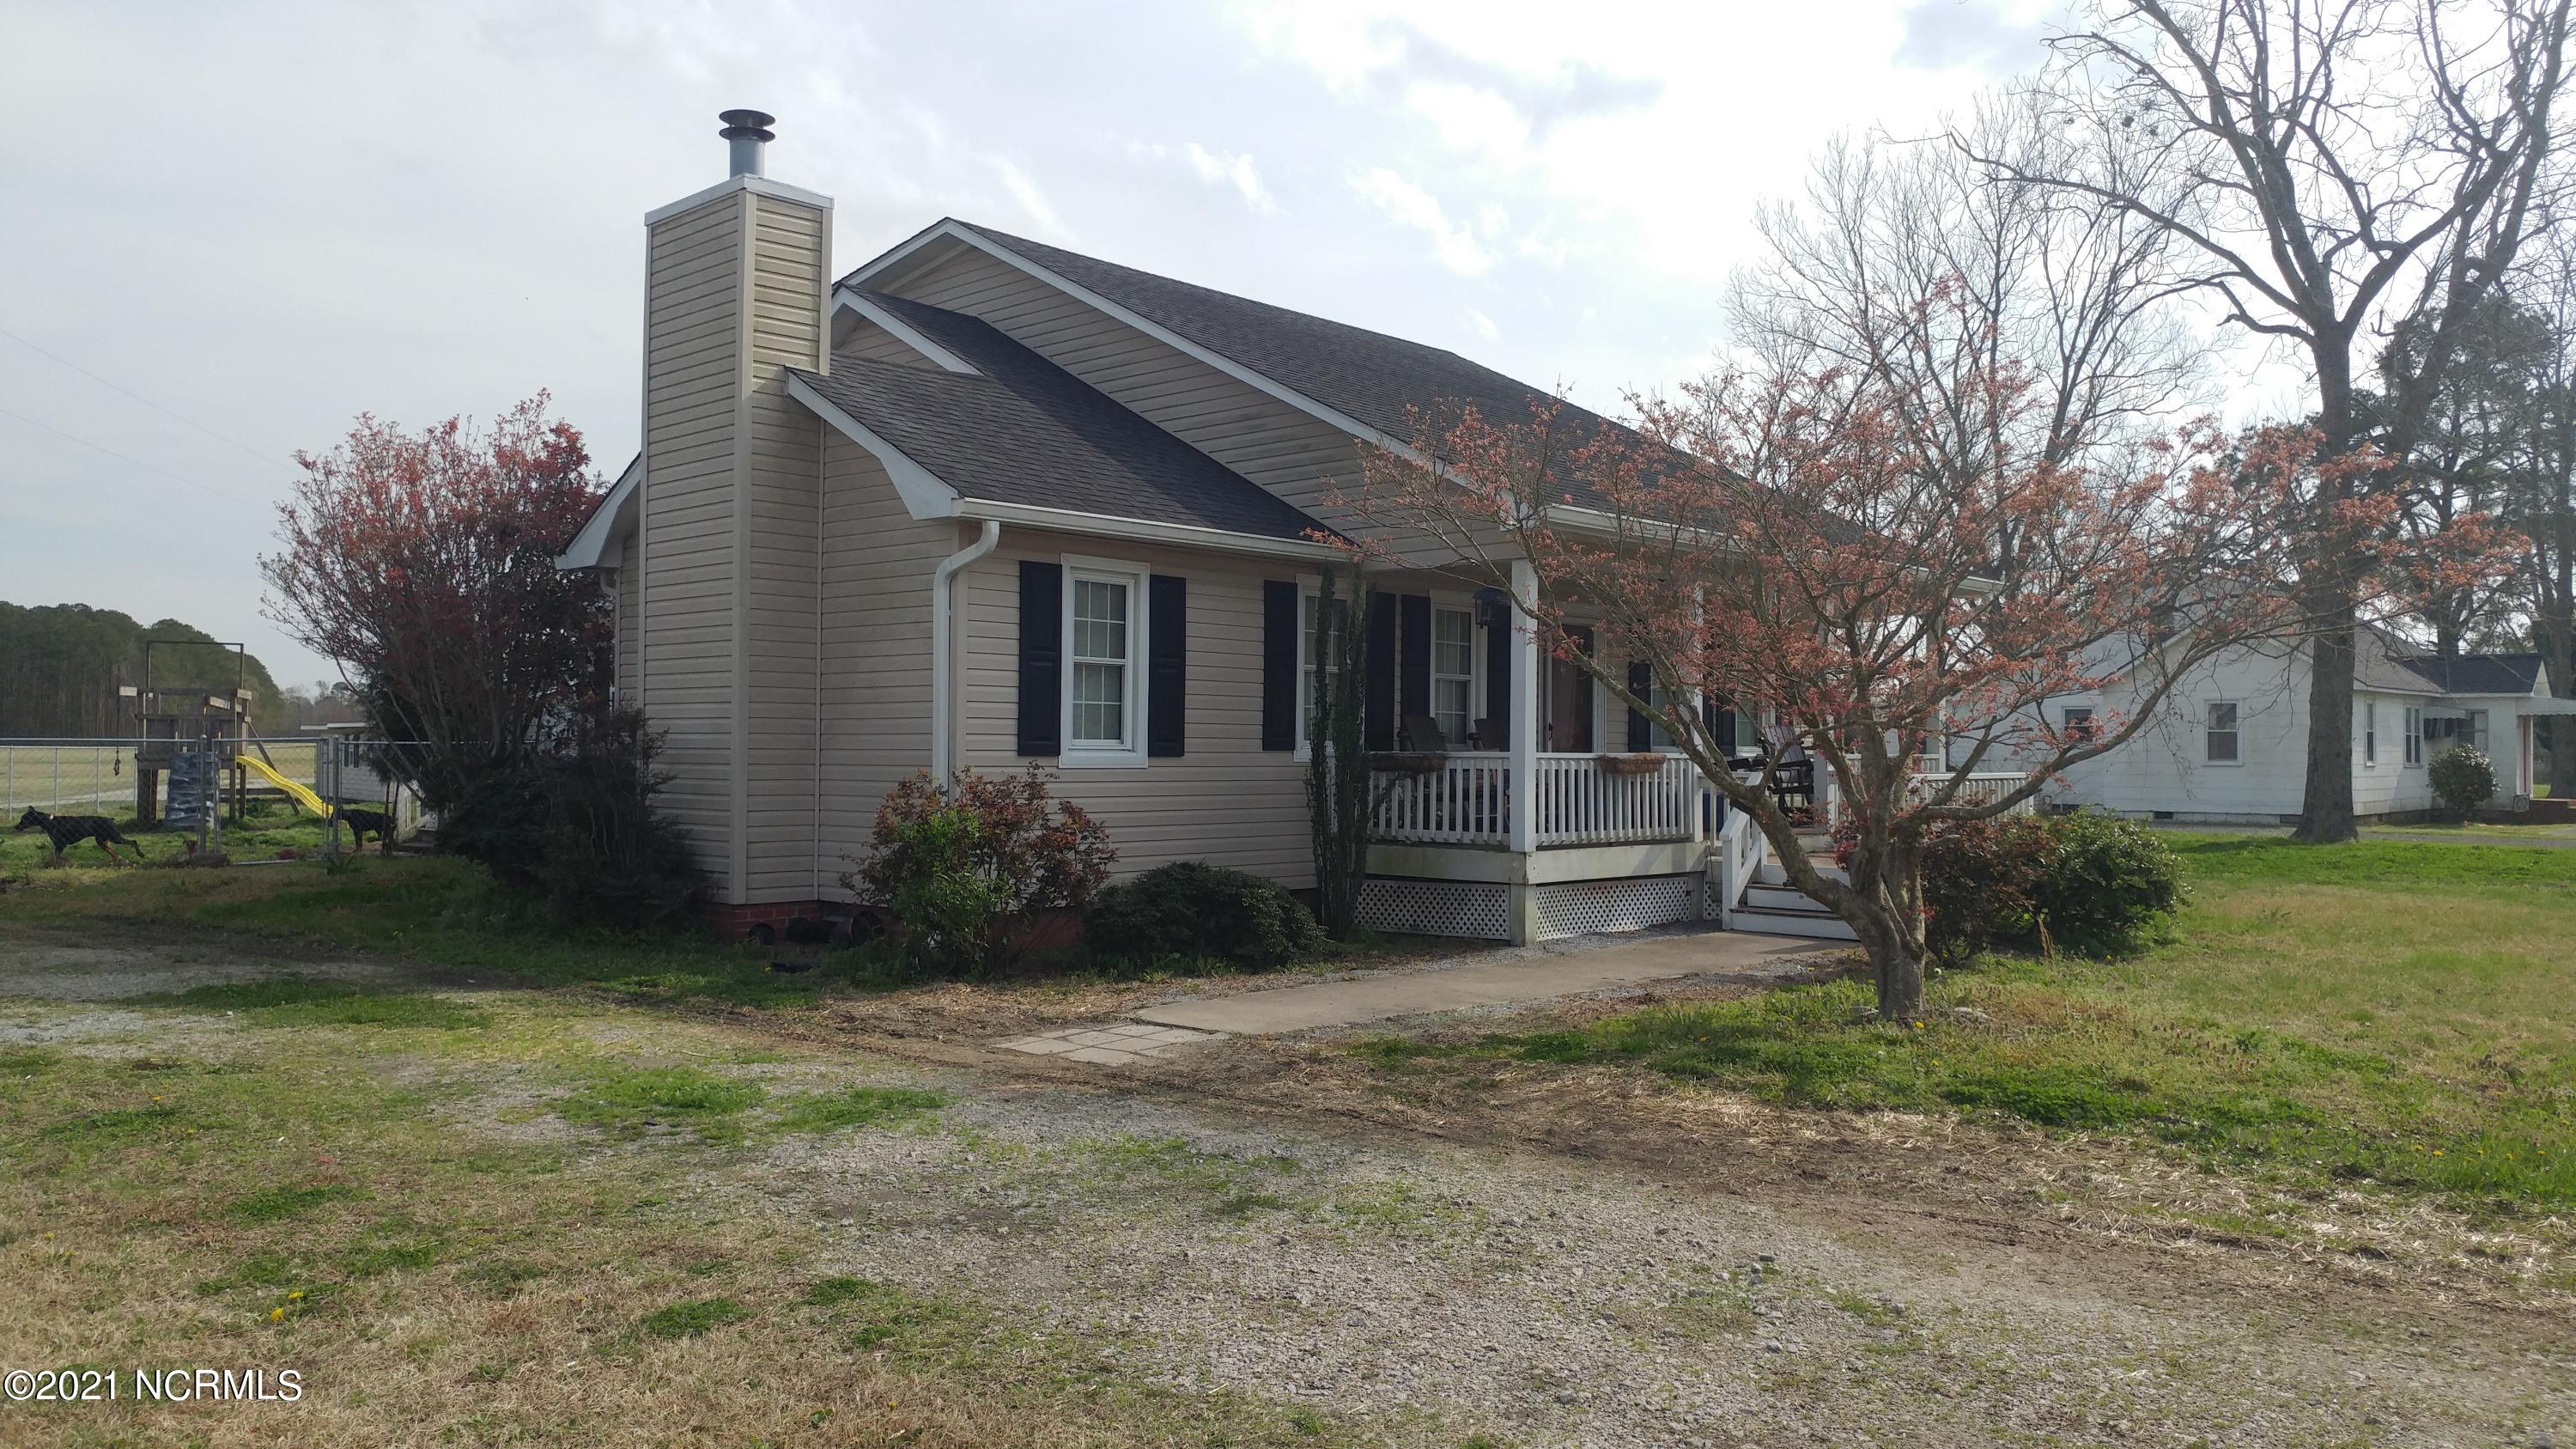 2615 Nc-99, Belhaven, North Carolina 27810, 3 Bedrooms Bedrooms, 10 Rooms Rooms,2 BathroomsBathrooms,Single family residence,For sale,Nc-99,100264476